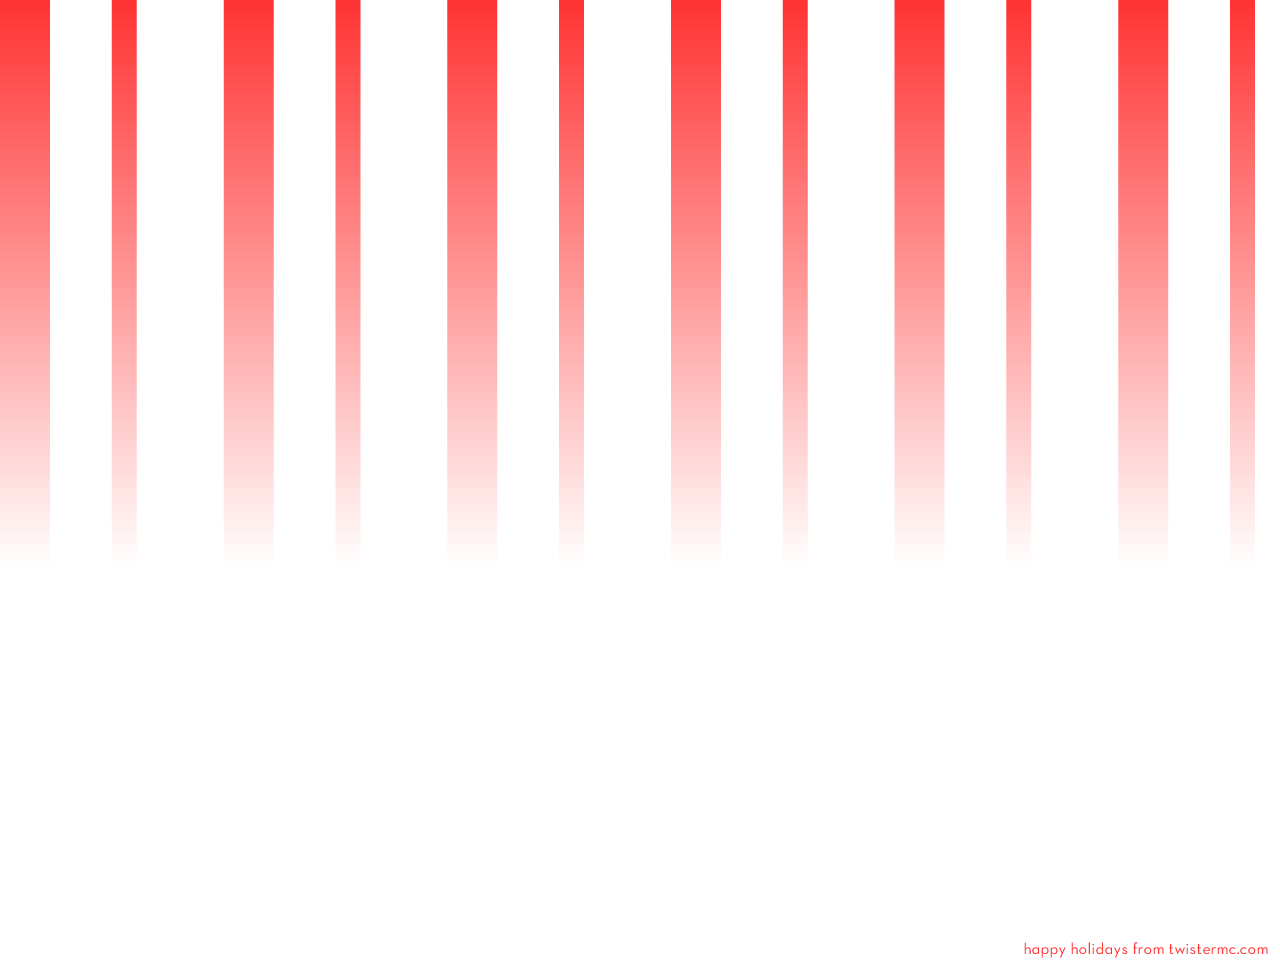 Candy Cane Backgrounds 1280x960